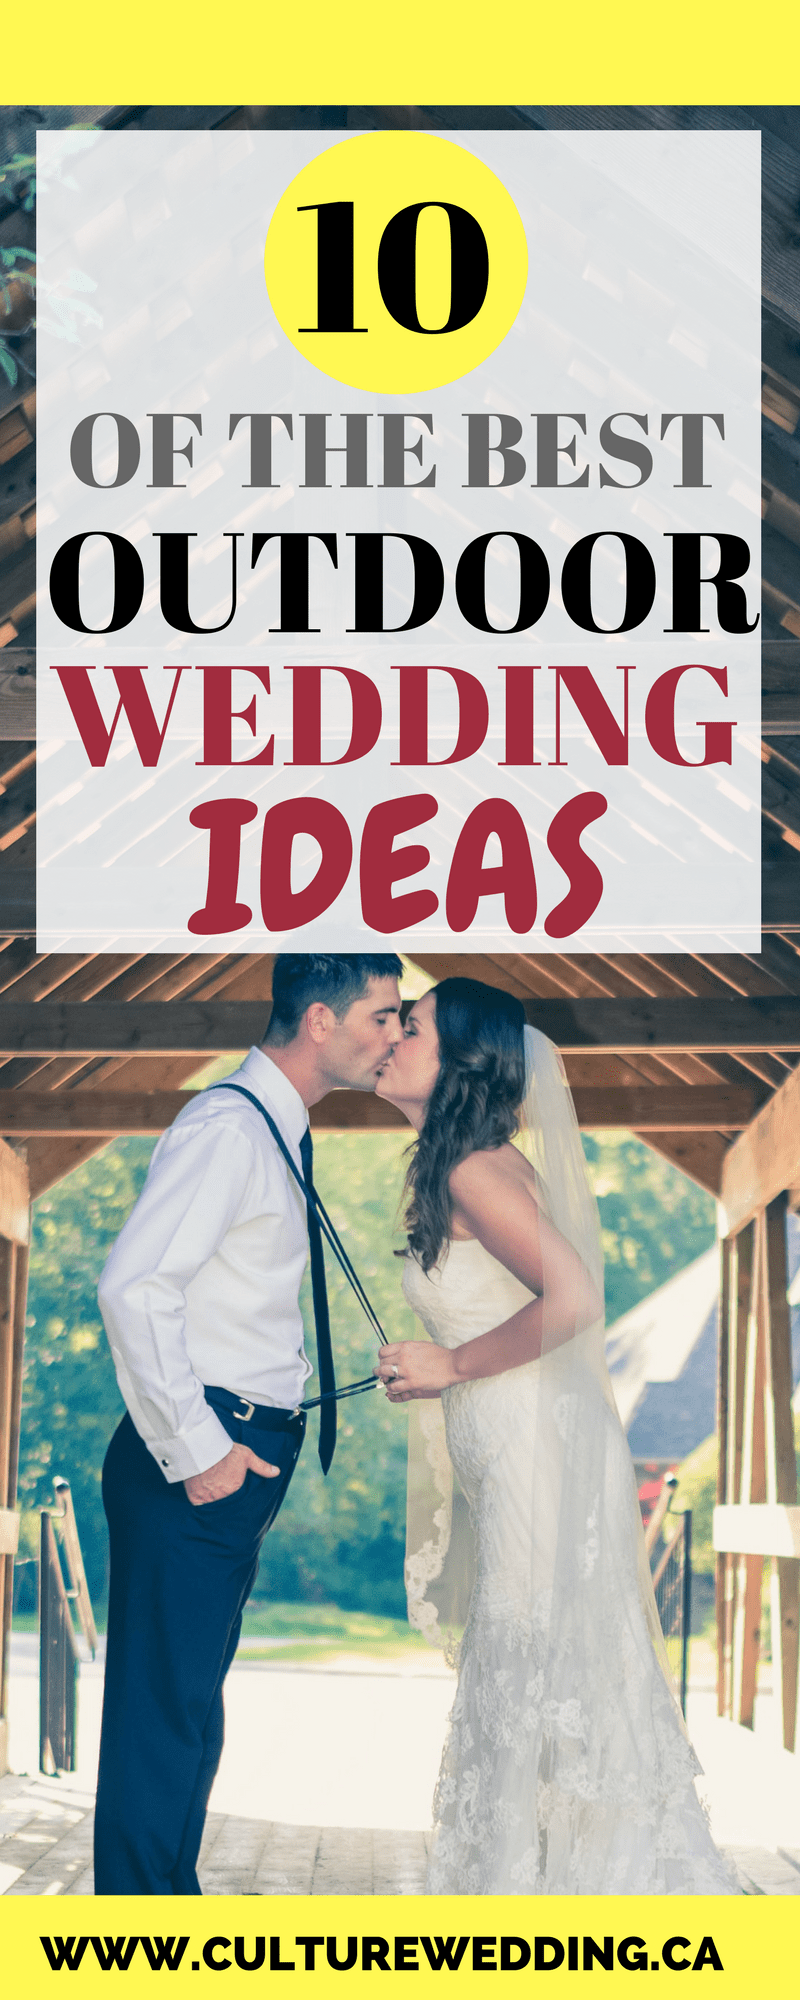 10 of the best outdoor wedding ideas from pinterest budget wedding 10 of the best outdoor wedding ideas from pinterest junglespirit Gallery